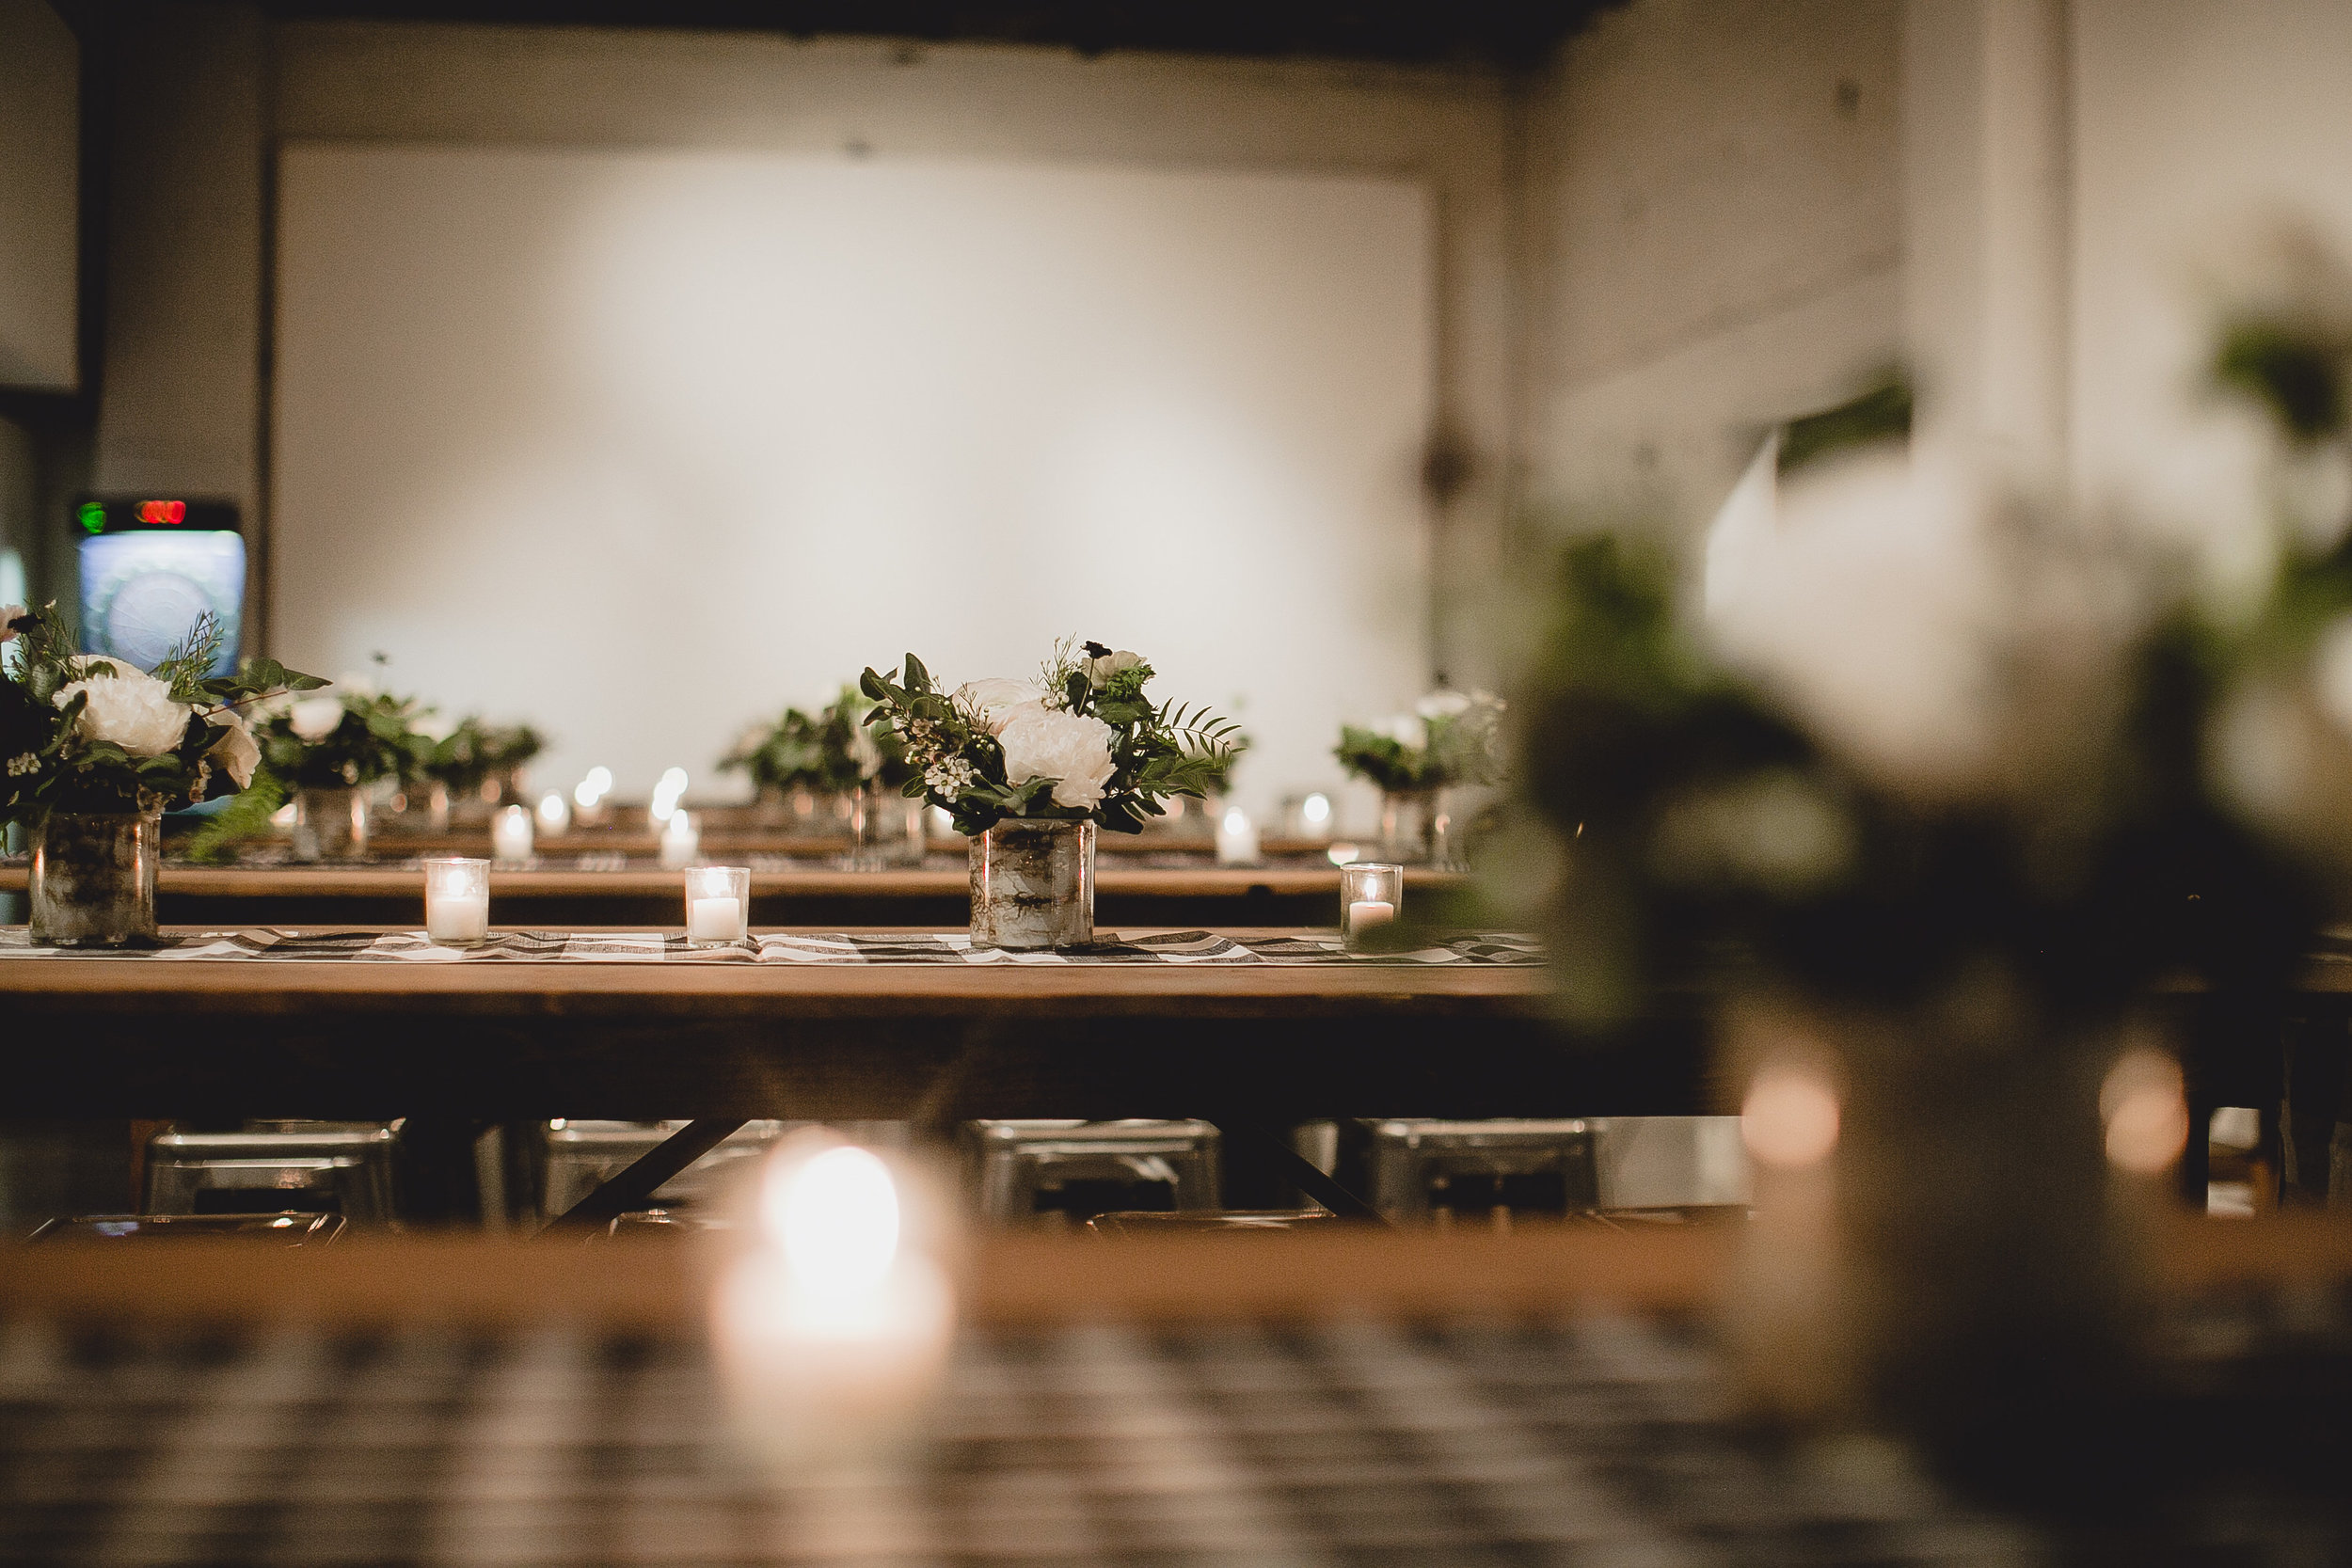 Moody, Non-Traditional NYE Wedding Featured on Junebug Weddings: Erin & Patrick - Konsider It Done- AZ Arizona Wedding & Event Planner, Designer, Coordinator Planning in Scottsdale, Phoenix, Paradise Valley, Tempe, Gilbert, Mesa, Chandler, Tucson, Sedona